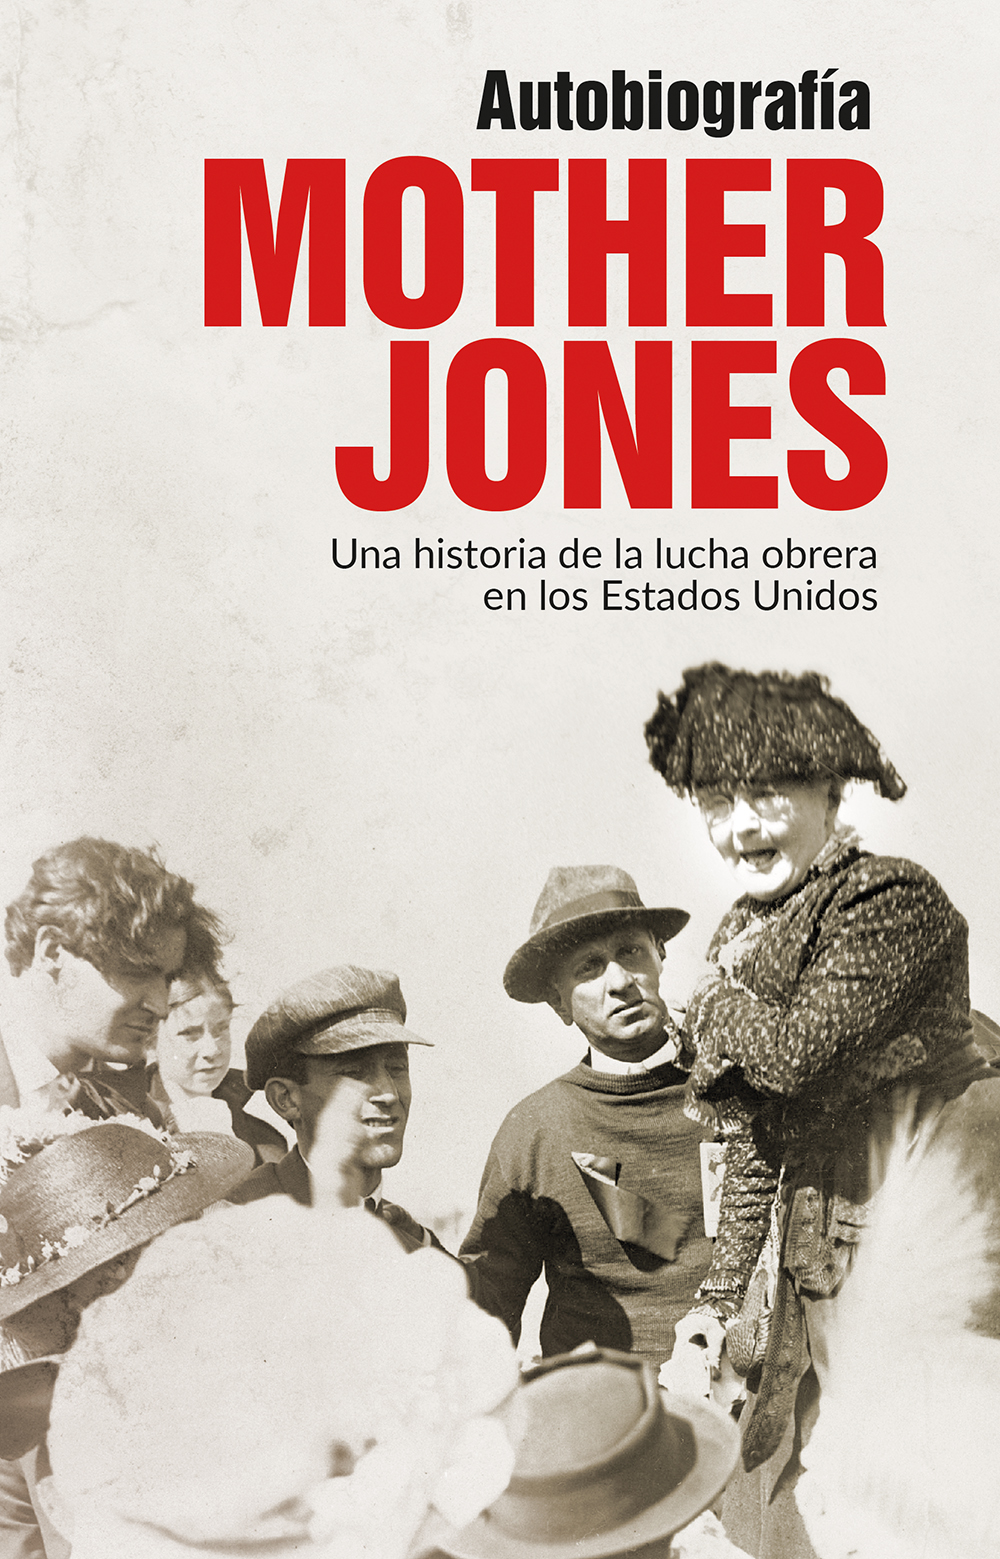 Mother Jones, autobiografía